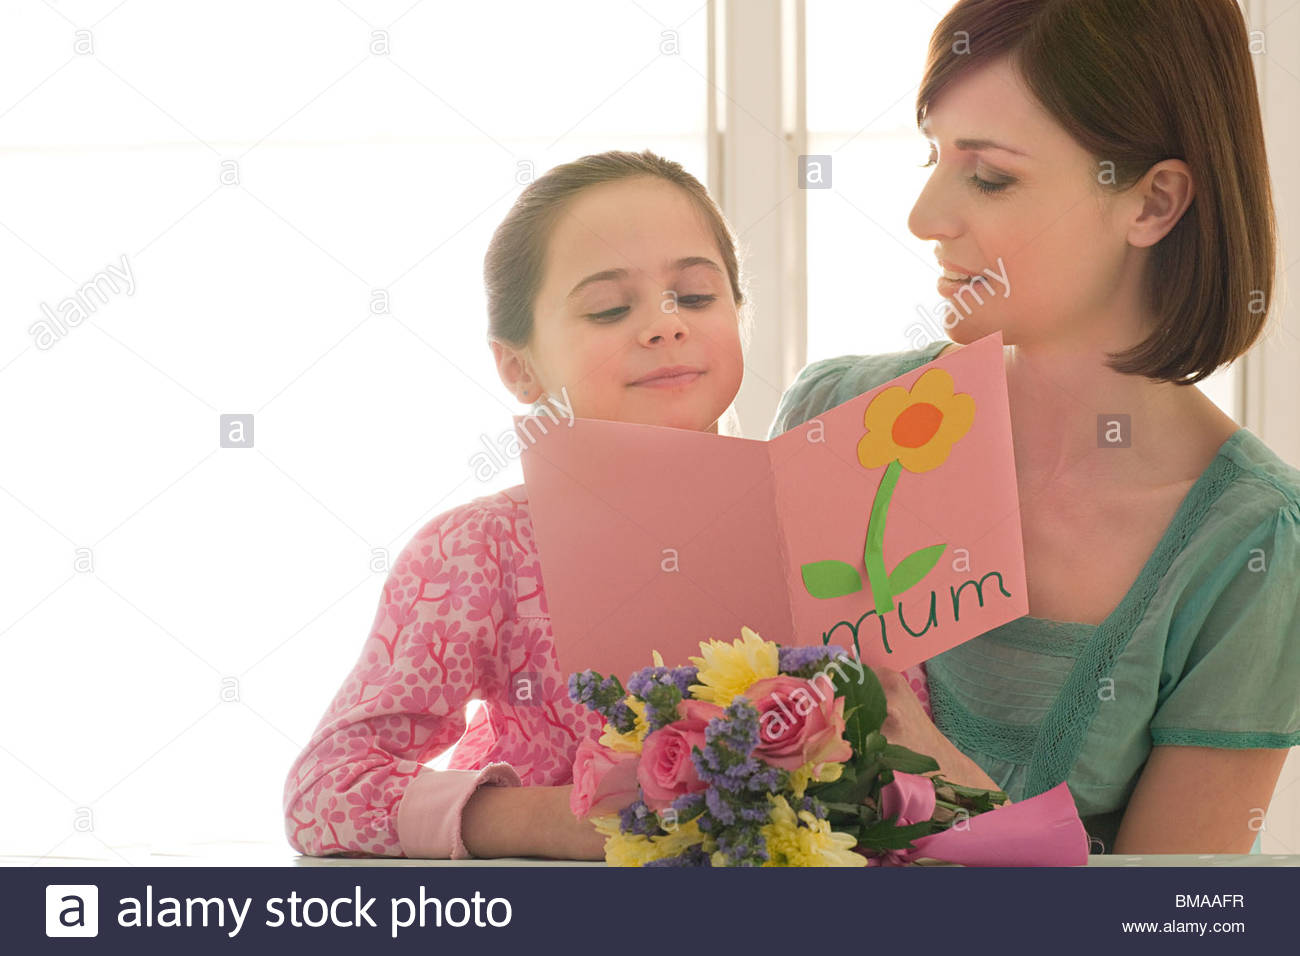 Jeune fille donnant Mothering Sunday card Photo Stock